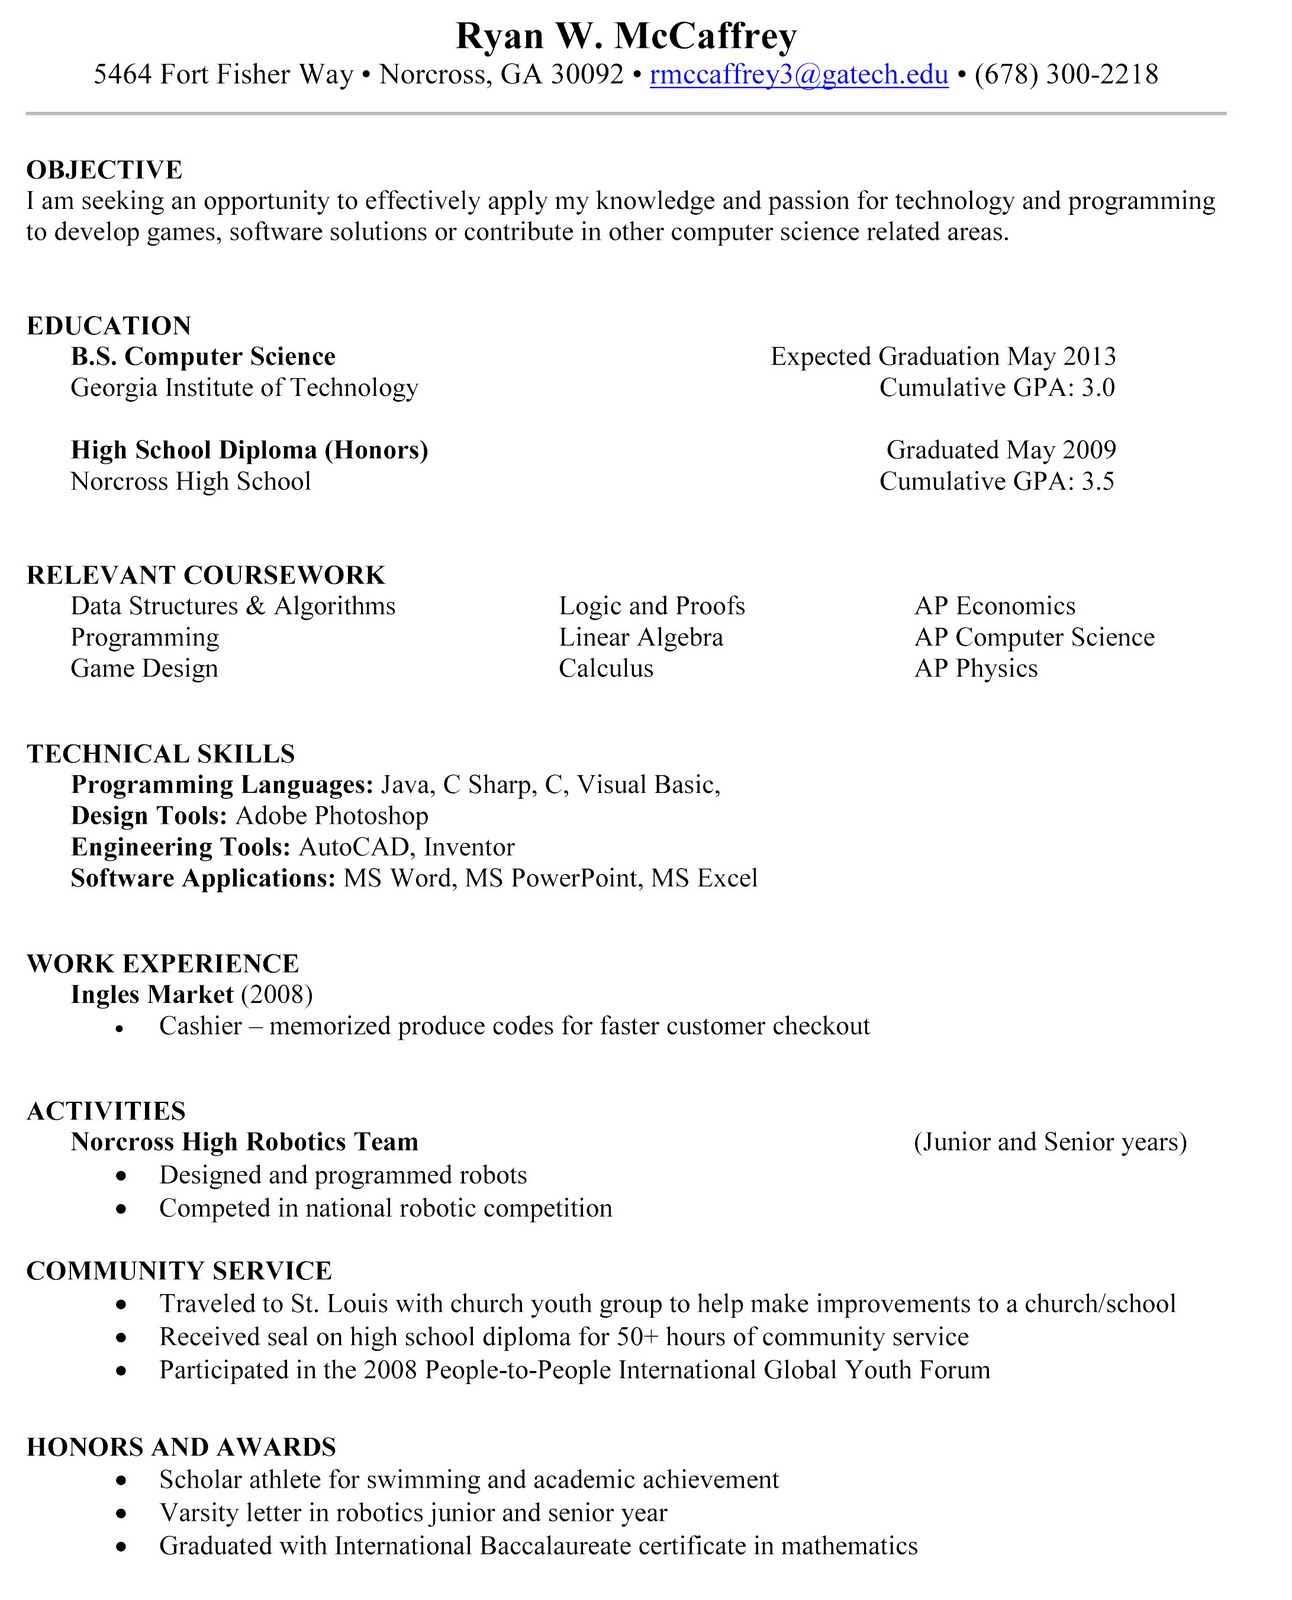 resume for undergraduate student no work experience sample resume for undergraduate student no work experience sample resumes career services resume sample no